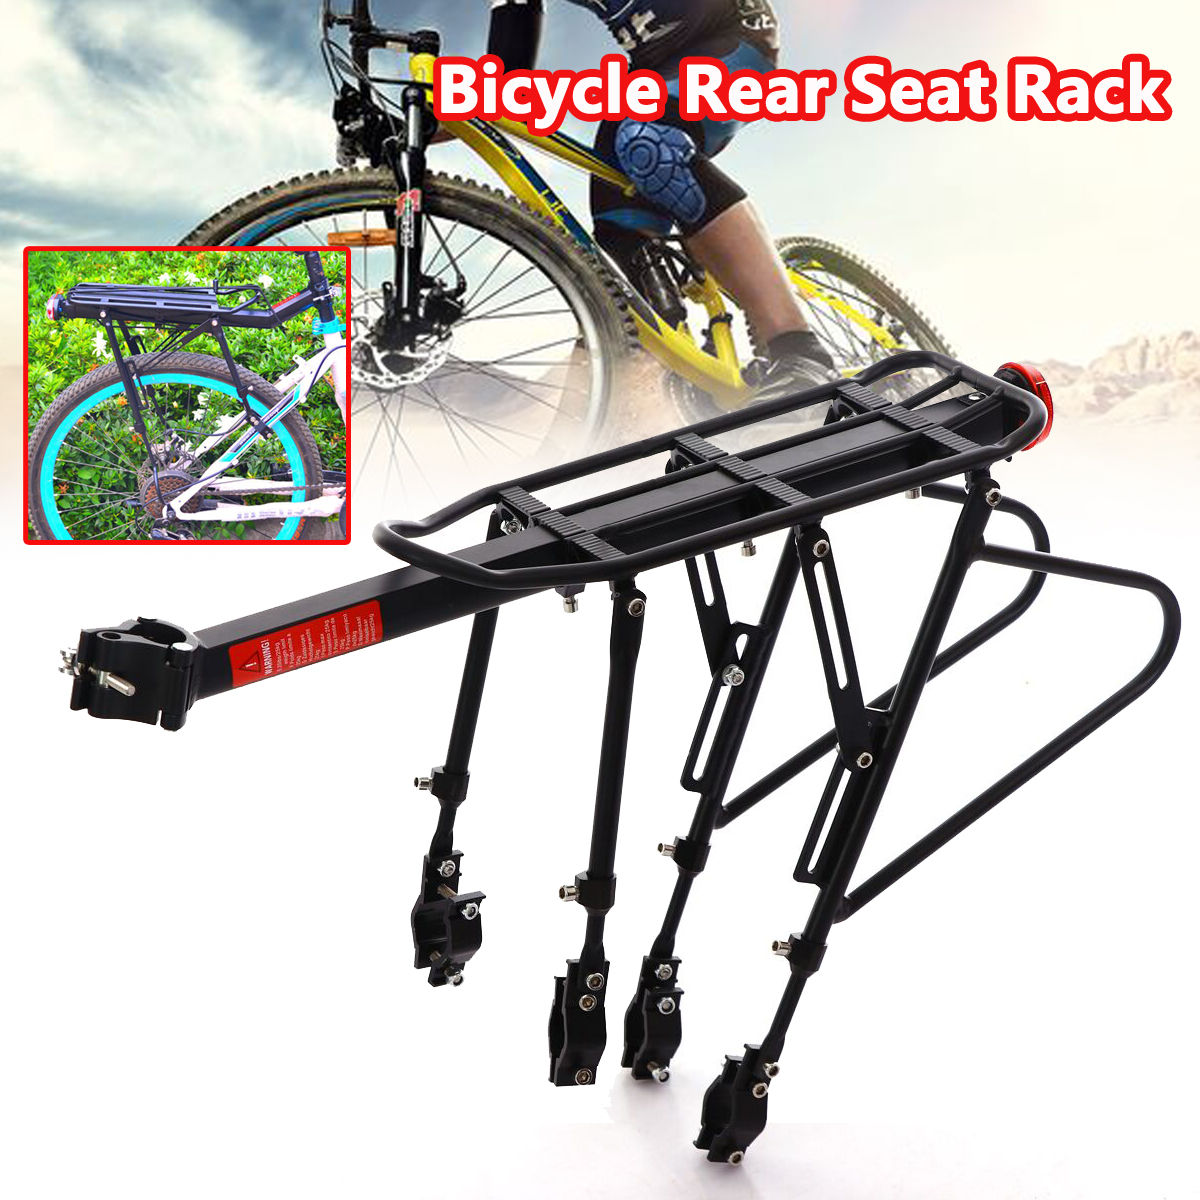 Aluminum Alloy Bicycle Racks Bicycle Luggage Carrier Seat Shelf Bracket MTB Bicycle Mountain Road Bike Rear Rack 50kg 2018 bike luggage cargo rear rack can be acted as power bank useful bicycle rear carrier racks new bicycle accessories